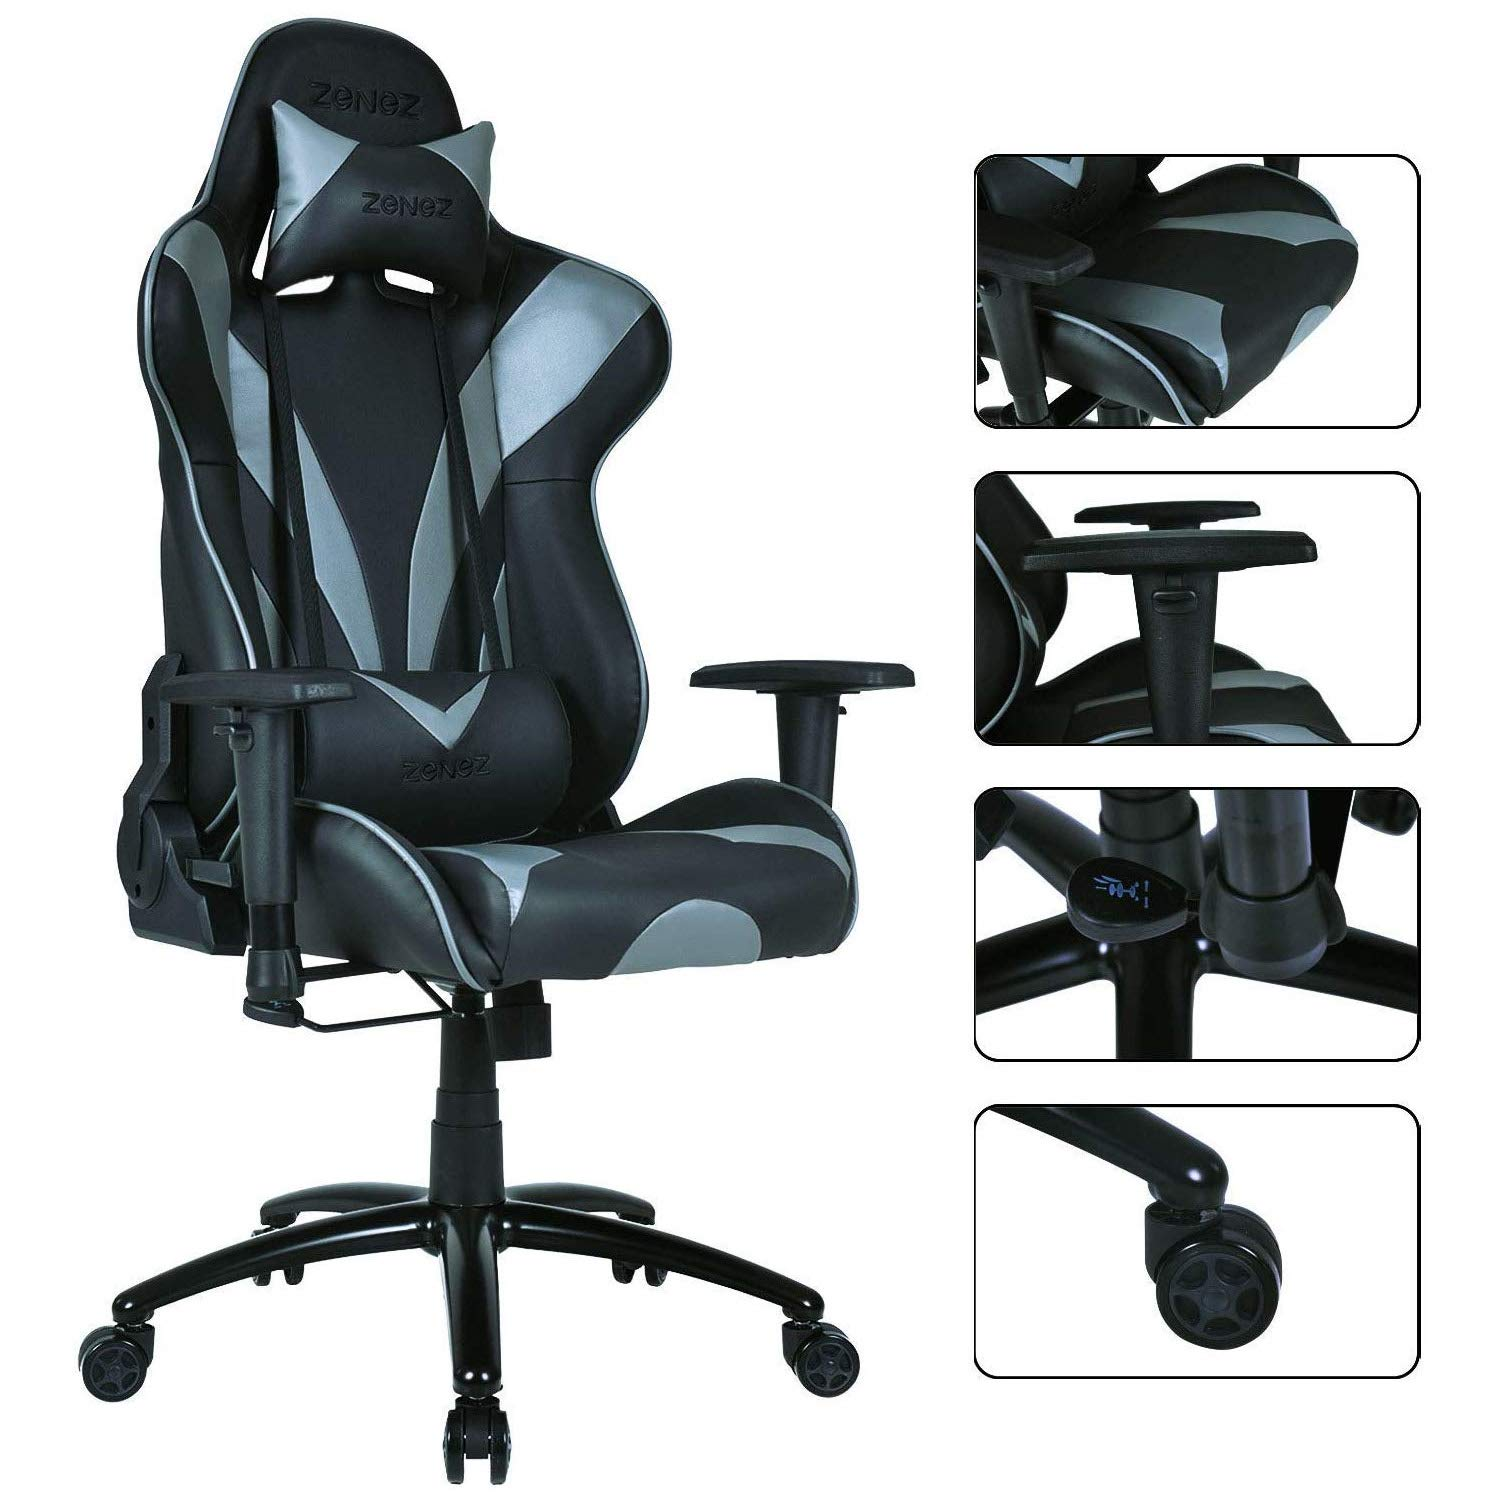 ZENEZ Gaming Chair Office Chair High Back Computer Chair Racing Ergonomic Backrest and Seat Height Adjustable Recliner Swivel Rocker with Headrest and Lumbar Pillow Large Size(Black) by ZENEZ